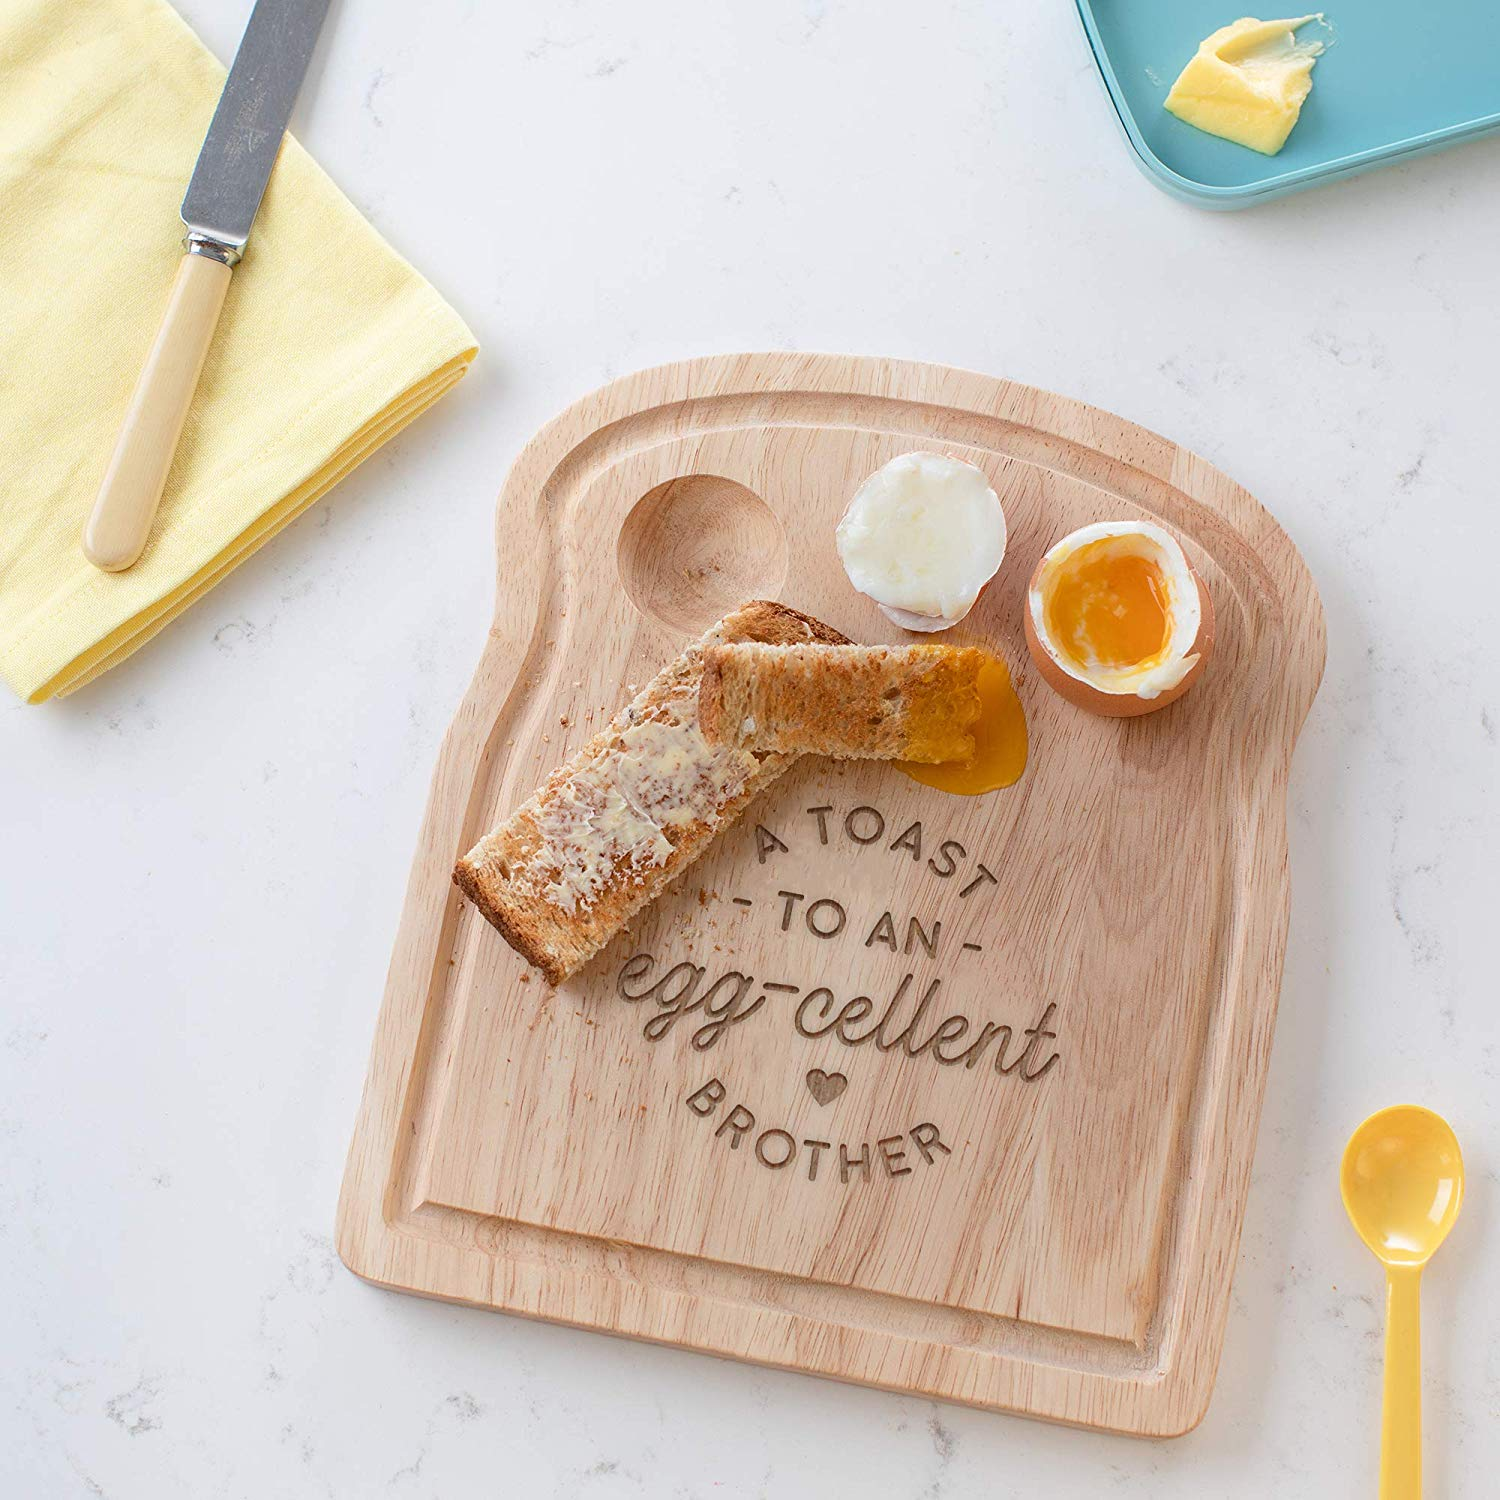 A Toast to an Egg-cellent Brother Breakfast Egg Board